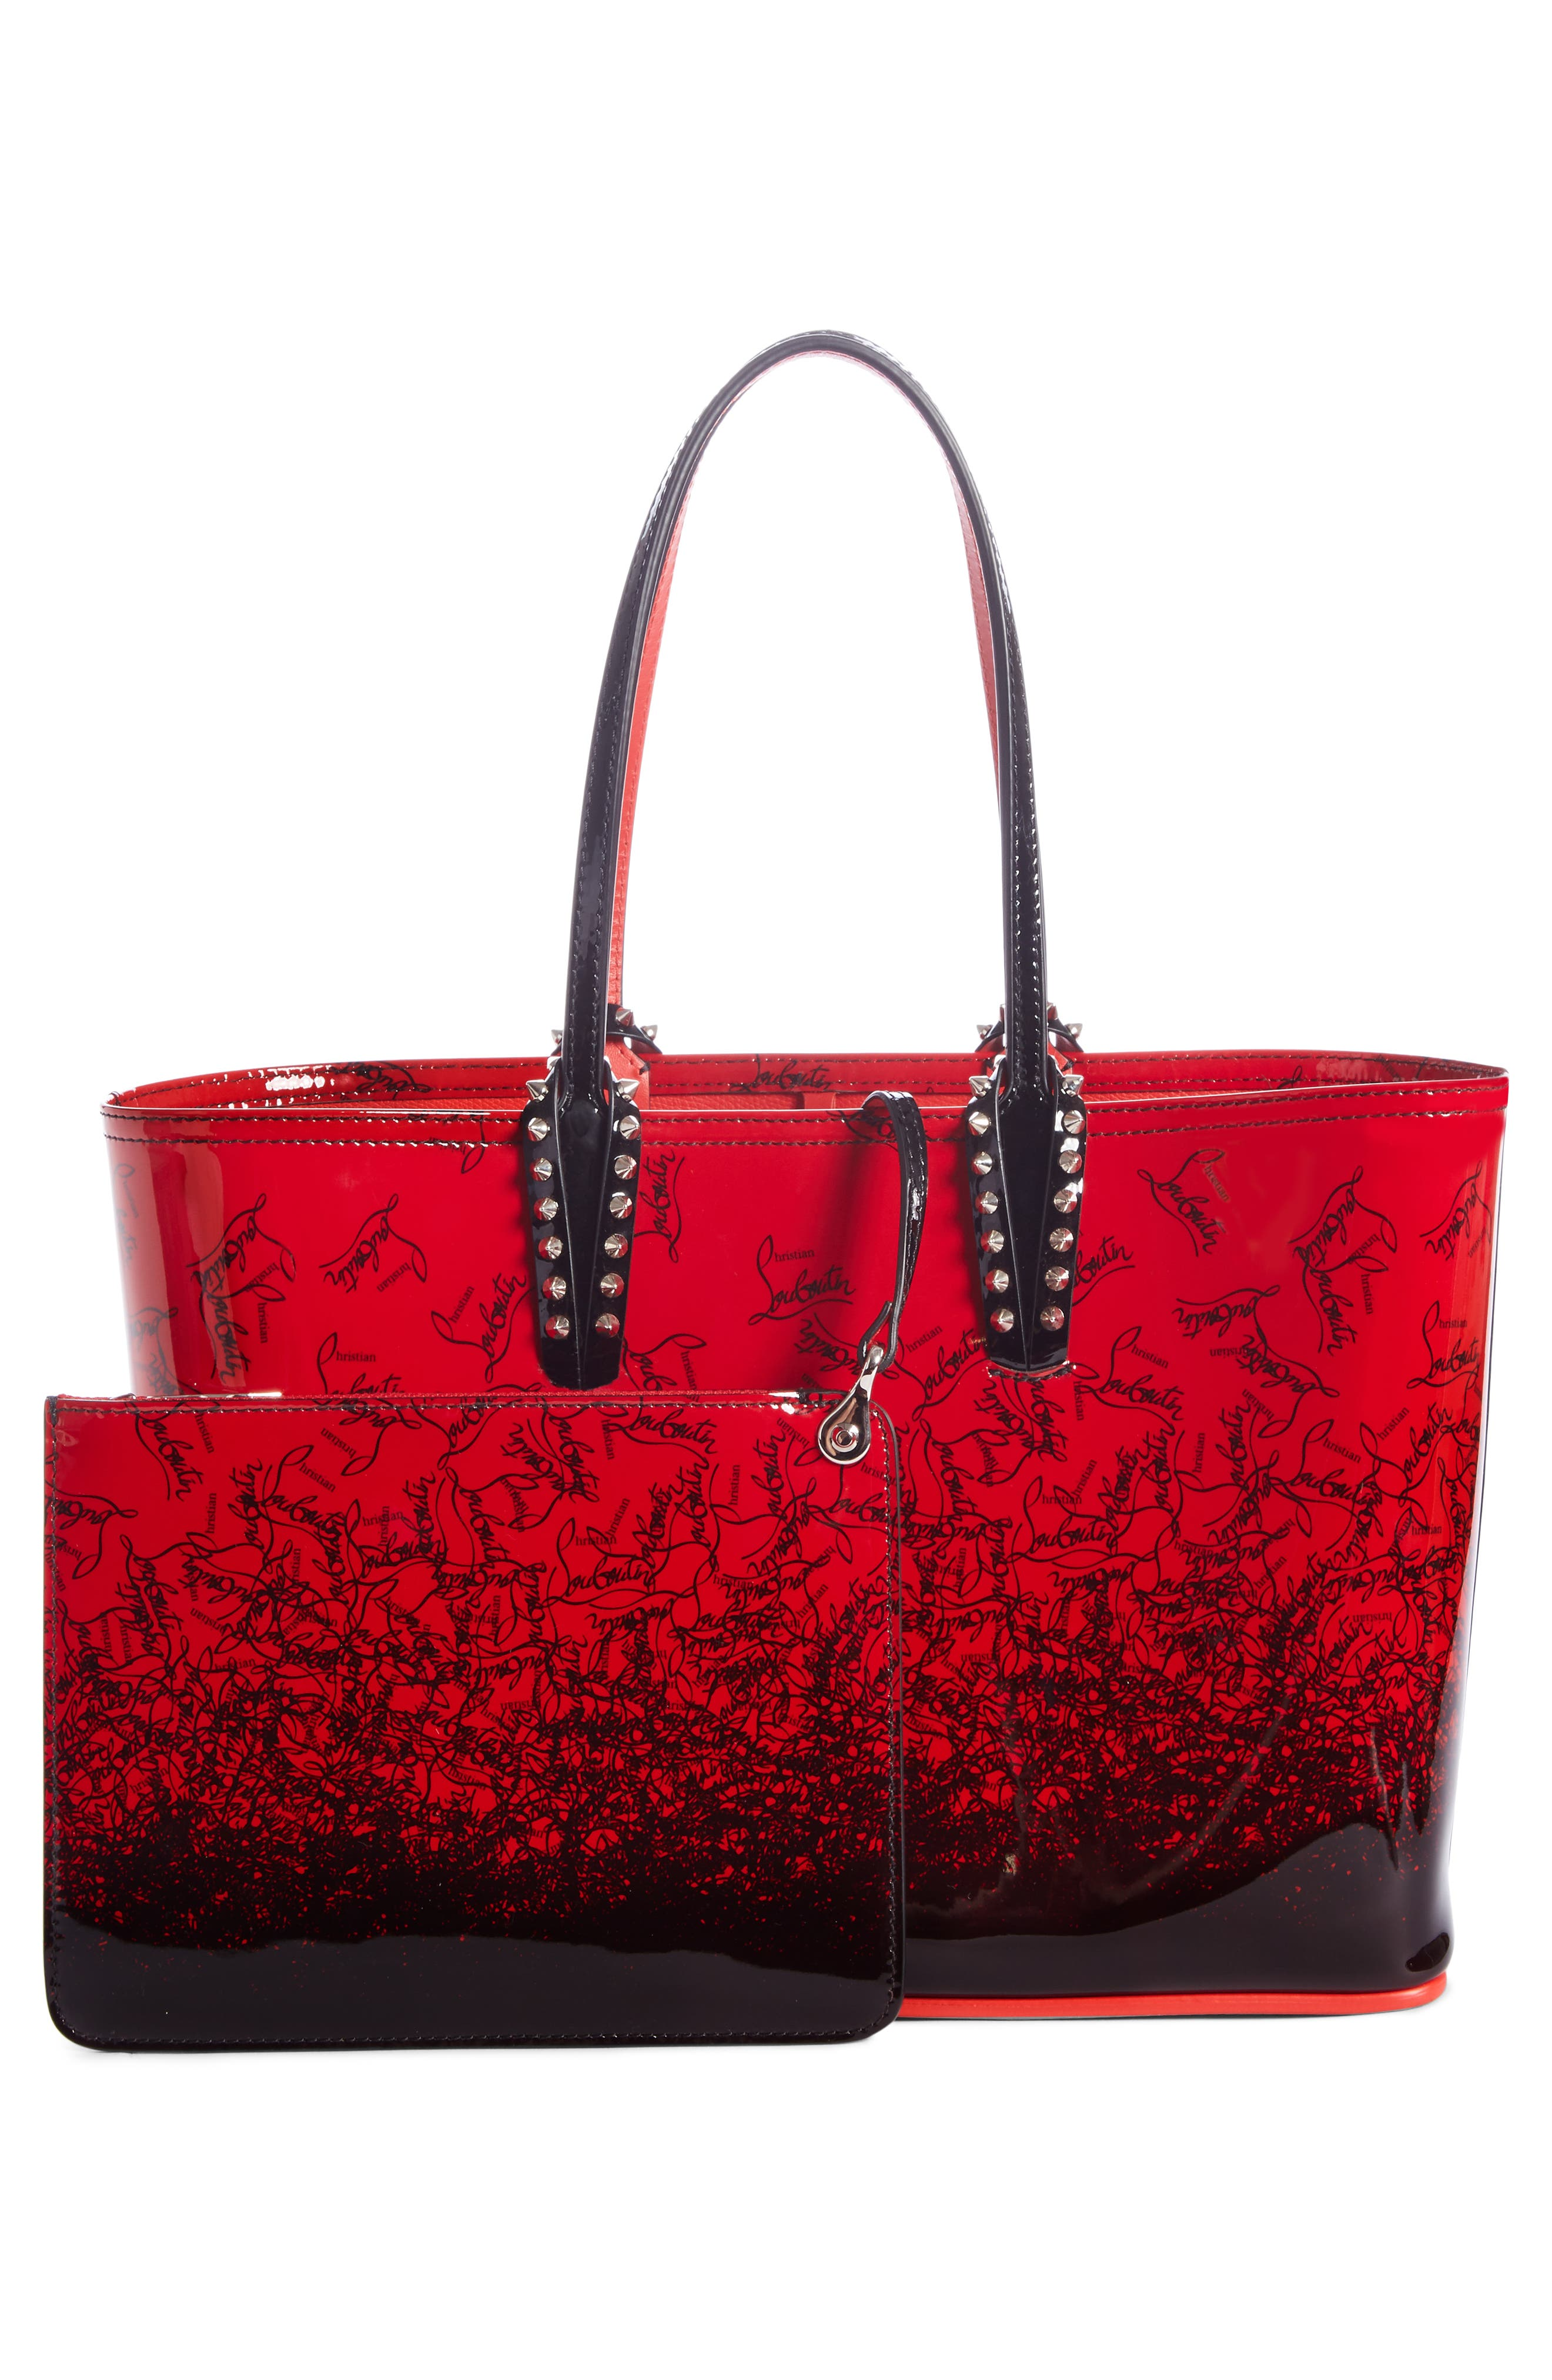 CHRISTIAN LOUBOUTIN,                             Cabata Dégradé Patent Leather Tote,                             Alternate thumbnail 2, color,                             600